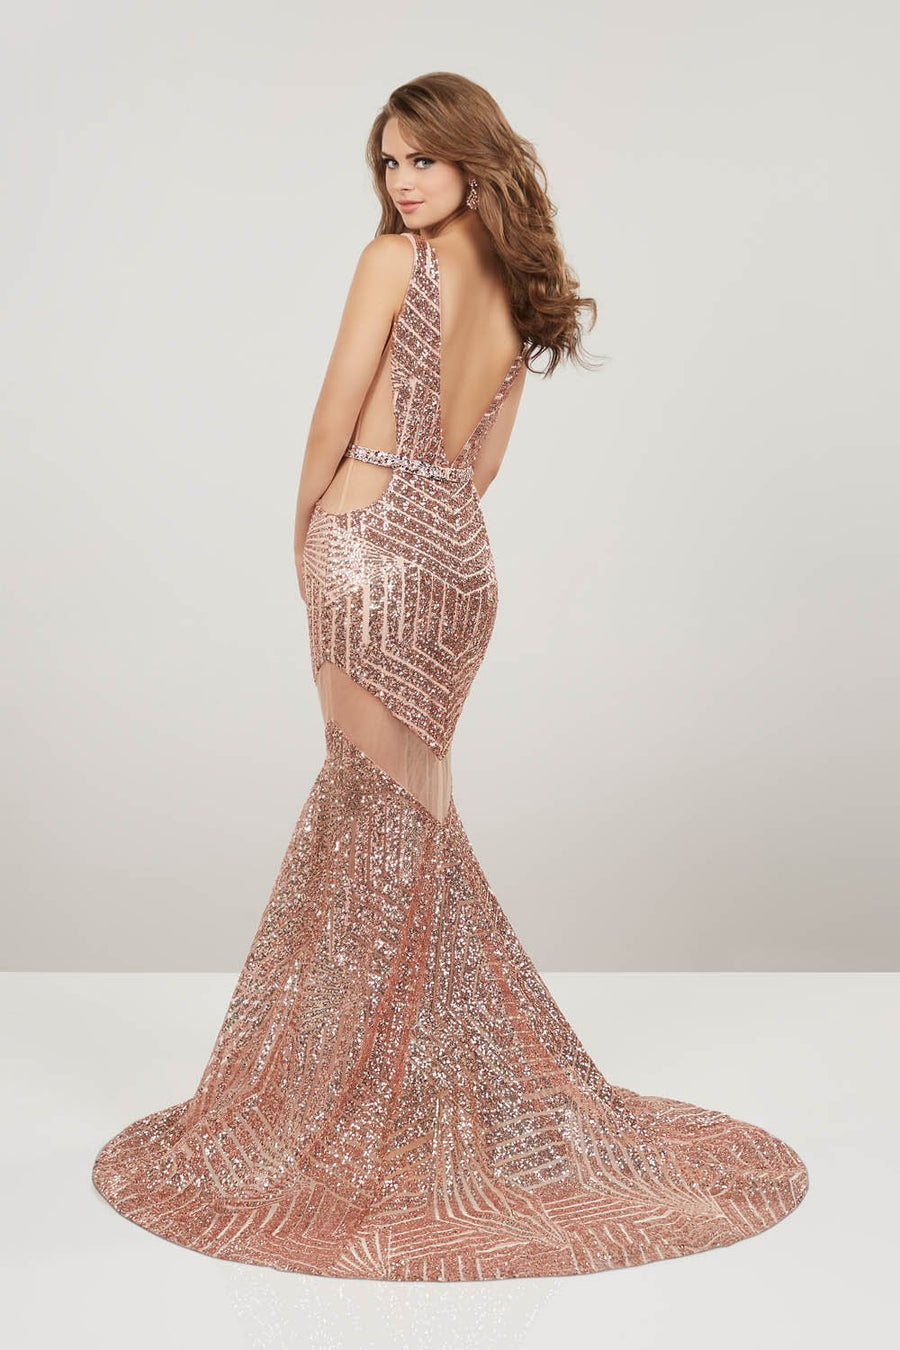 Panoply 14951 prom dress images.  Panoply 14951 is available in these colors: Black, Rose Gold.